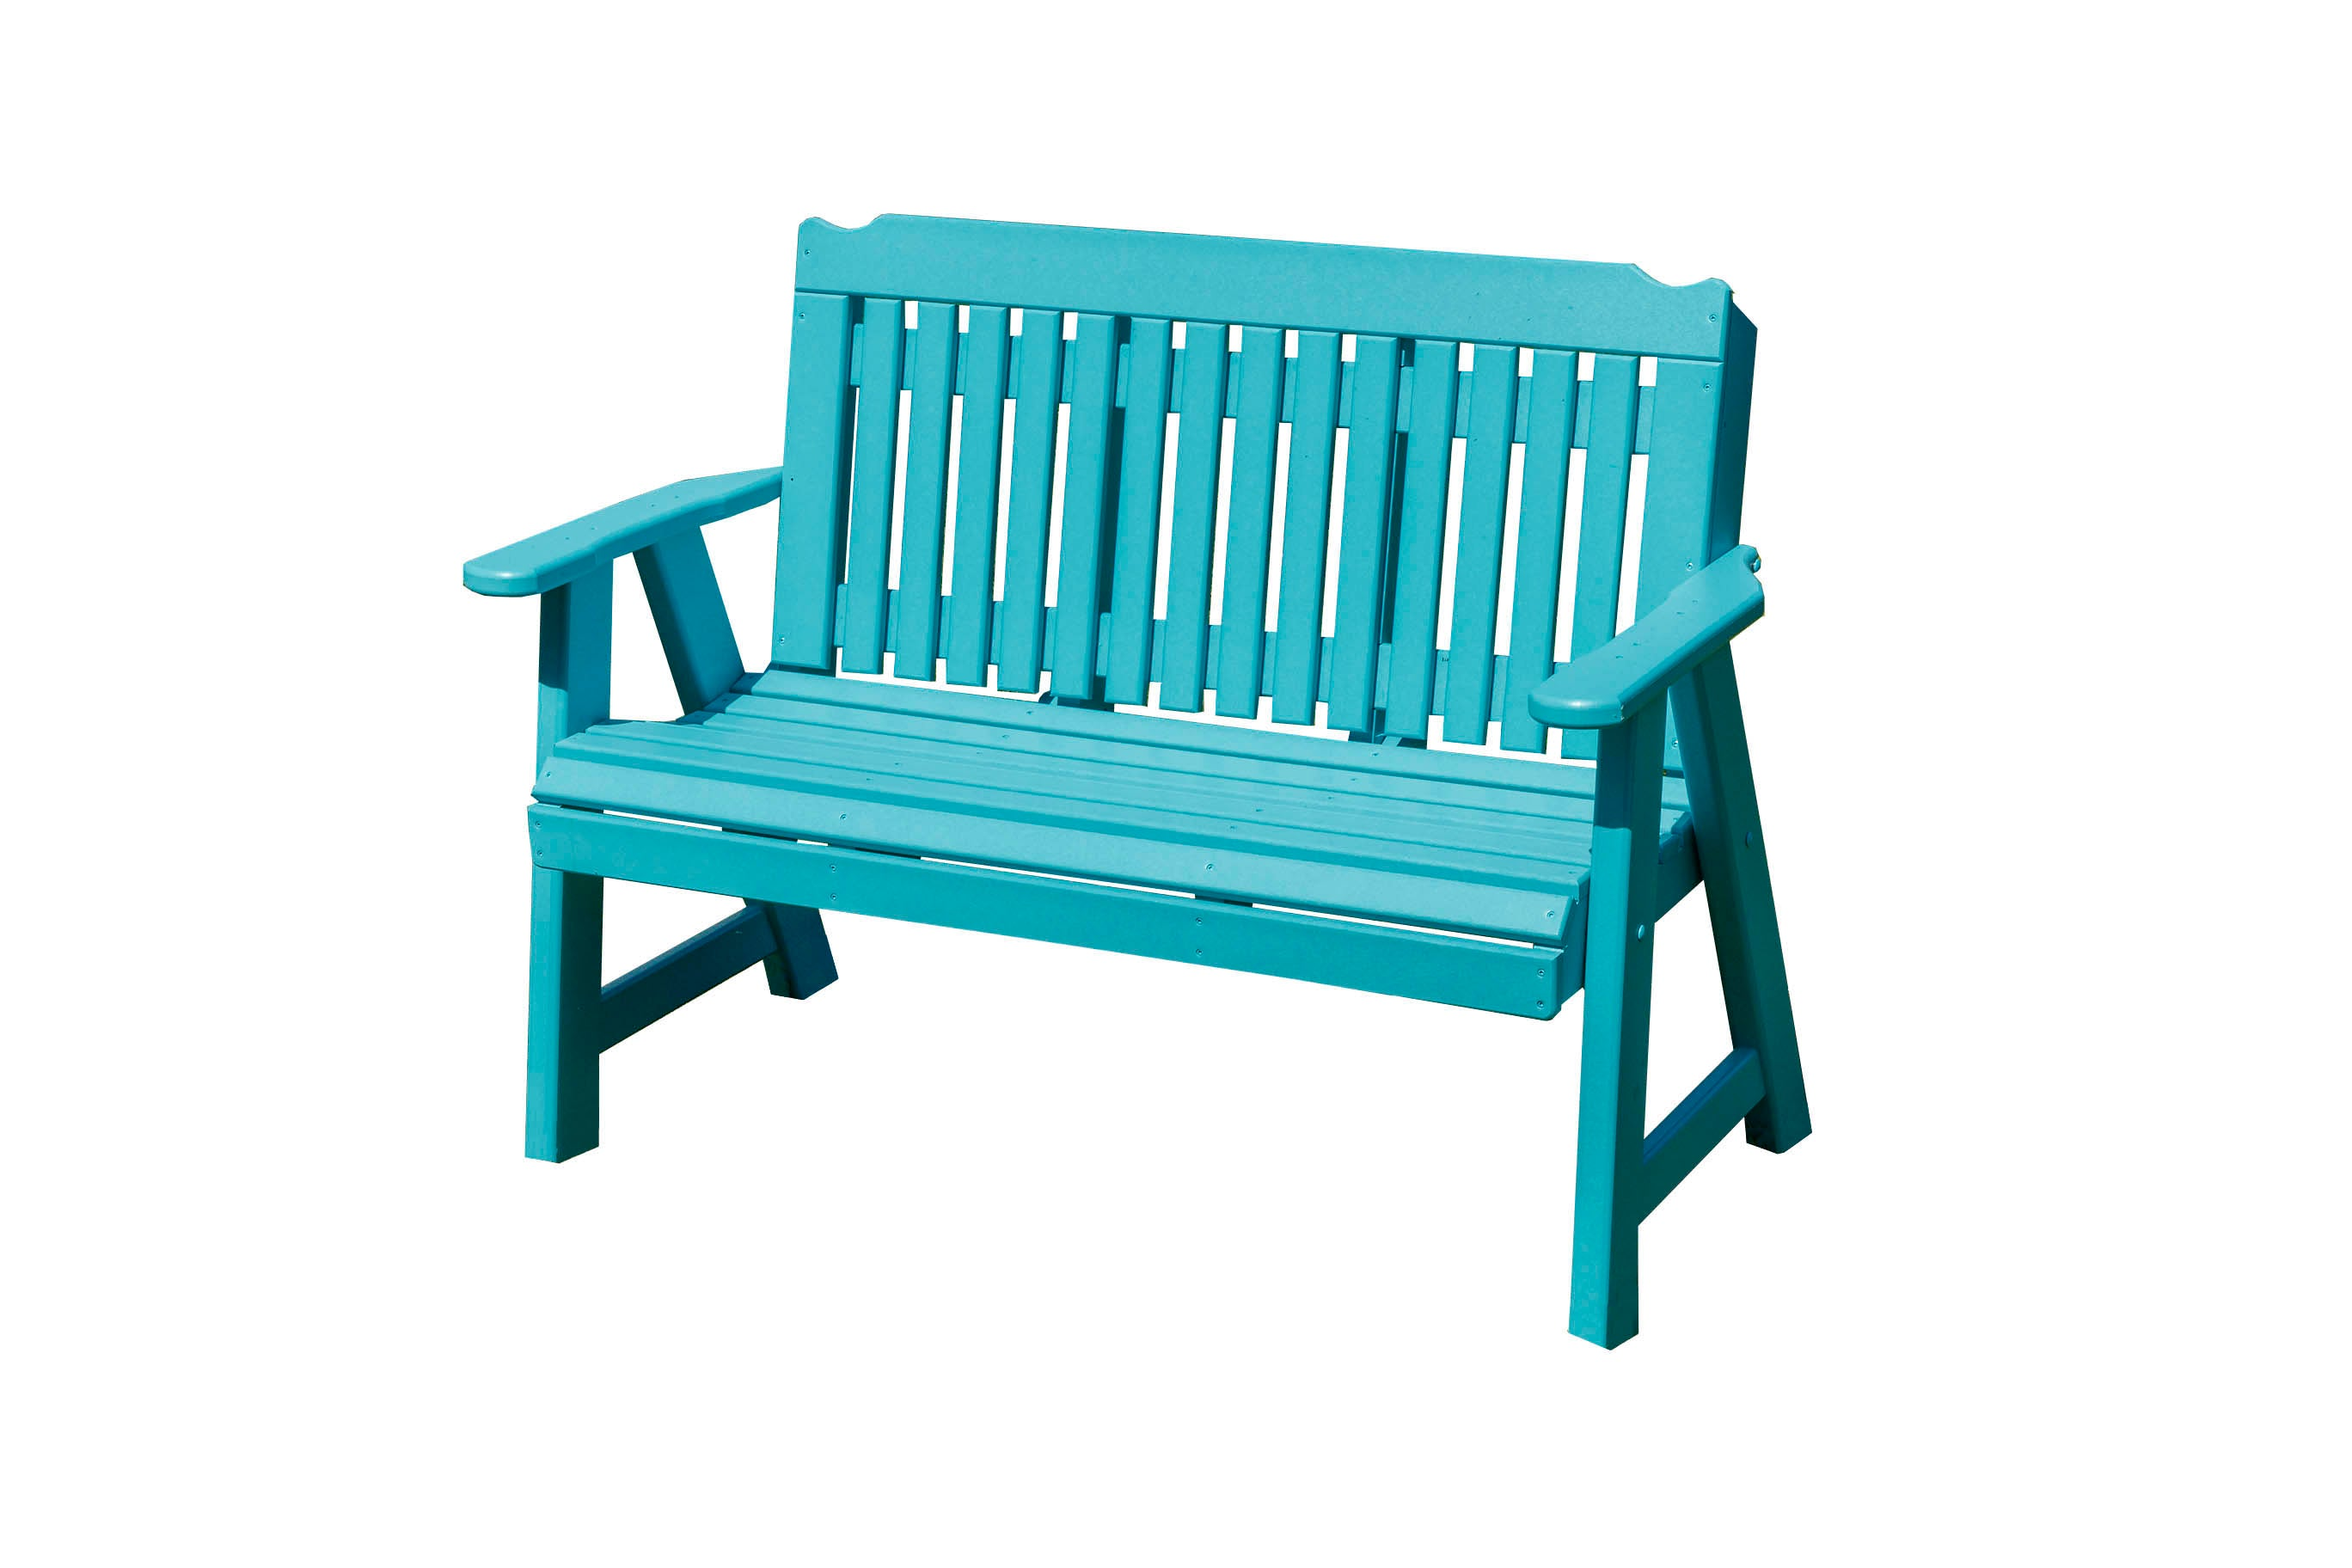 Outdoor Furniture Poly Lumber Patio Porch Logan Bench